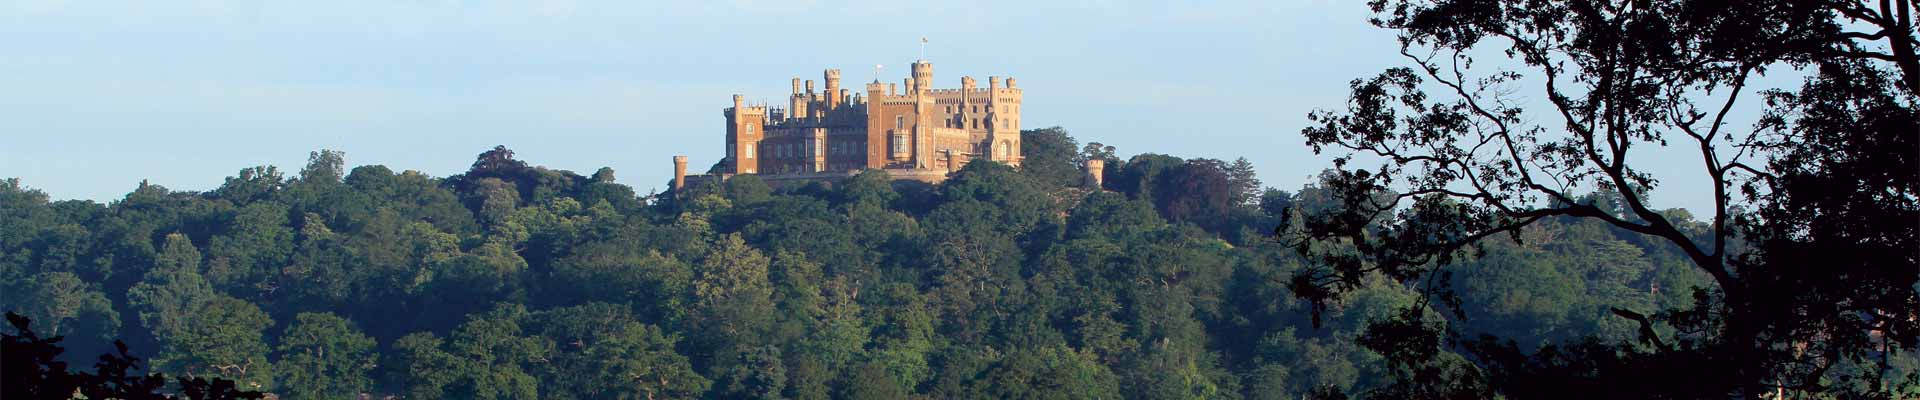 Photo of Belvoir Castle